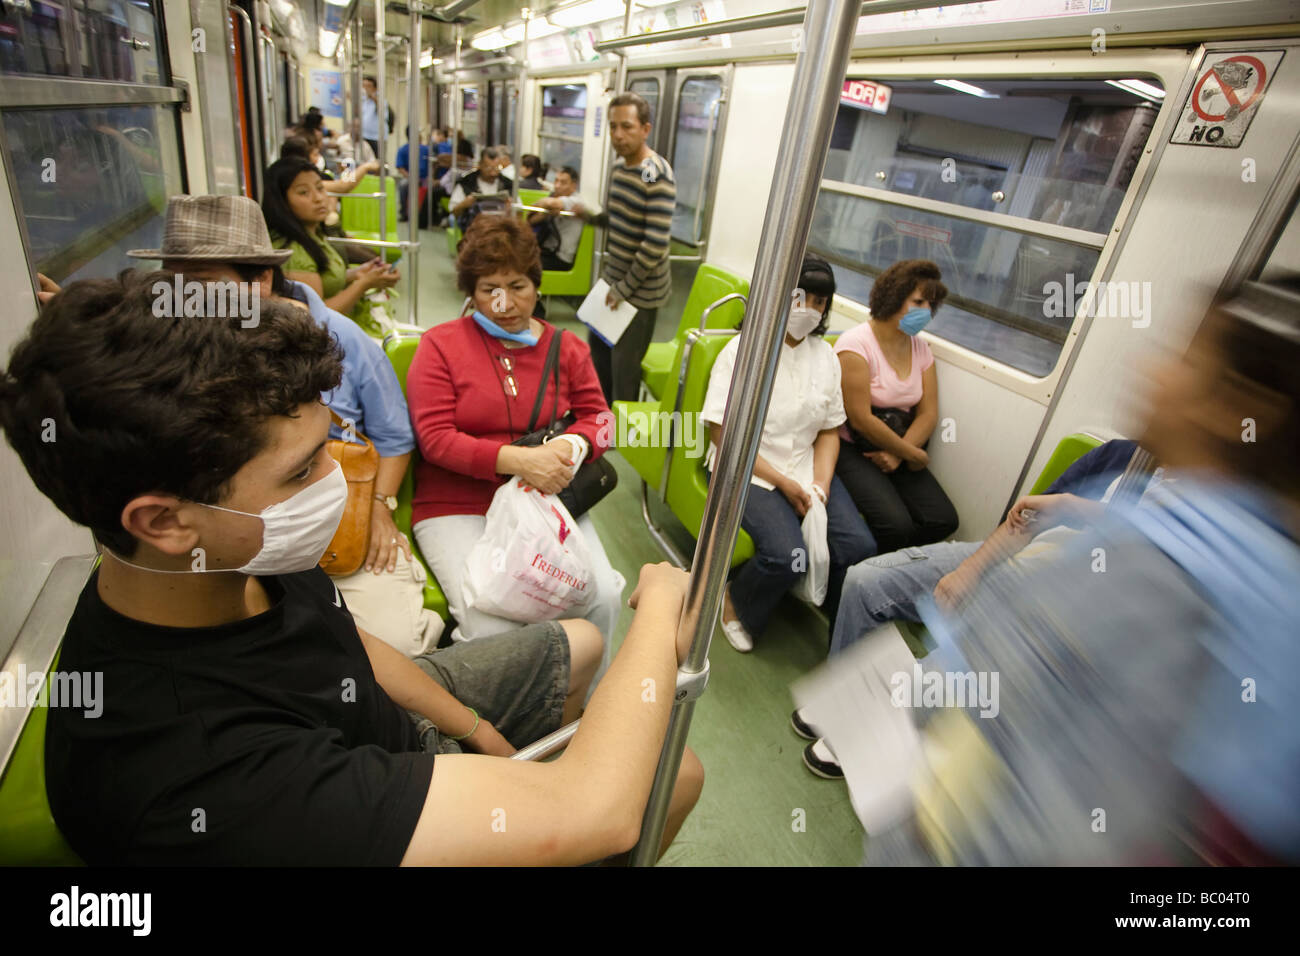 People inside the metro wearing masks as protection during the swine flu epidemic in Mexico City, DF, Mexico. - Stock Image